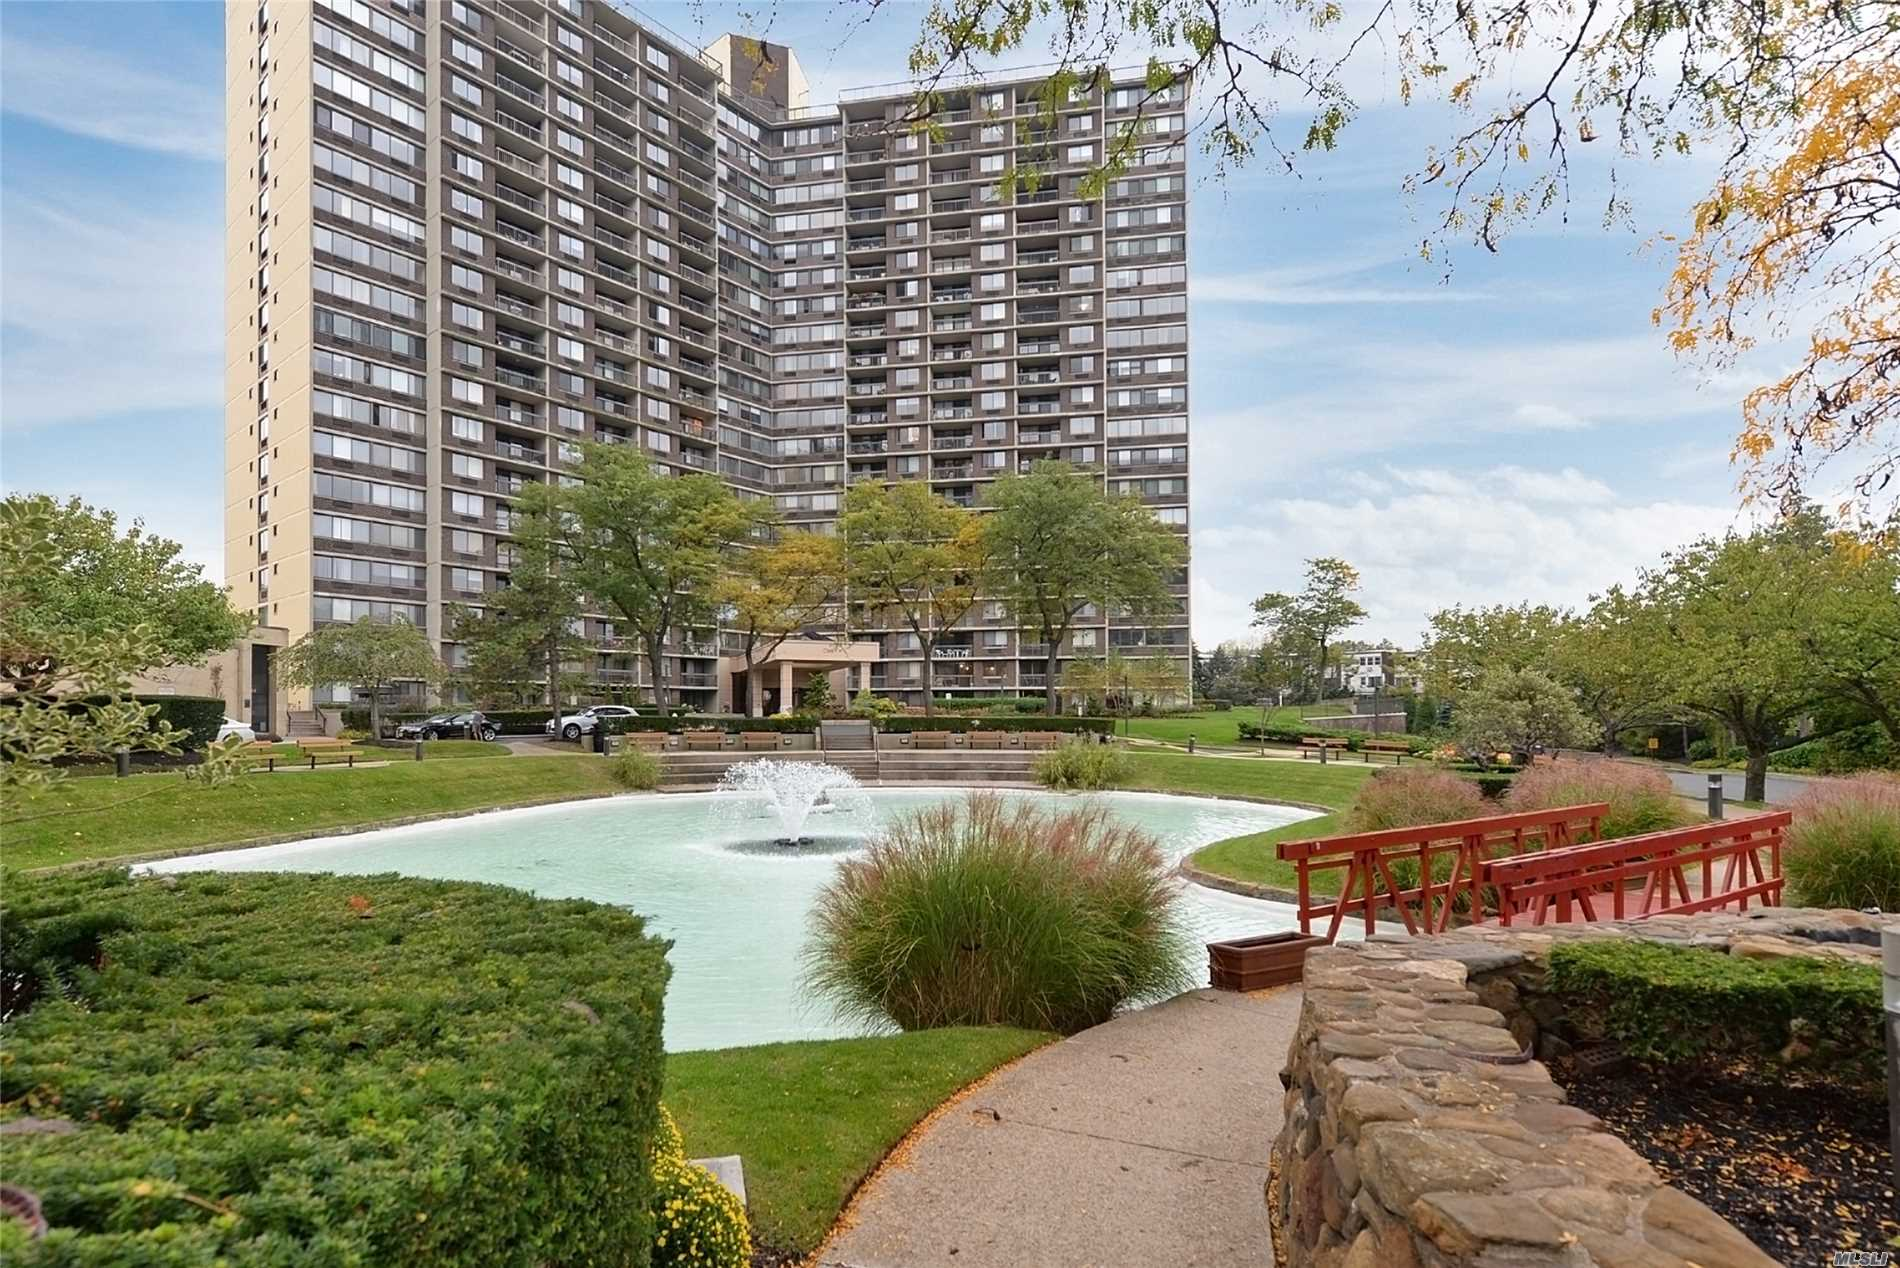 Fabulous Bay Club Gated Community. 24 Hr. Security. Doorman / Concierge. . Large 1Bedroom Unit With Terrace.Newly Renovated Kitchen & Bathroom. Wood Floors. Water View. Year Round Swim & Fitness Center, Indoor Parking (Extra Fees). Free Tennis Club. New On Premises Restaurant. Underground Stores. New Children's Playground. Best Location.